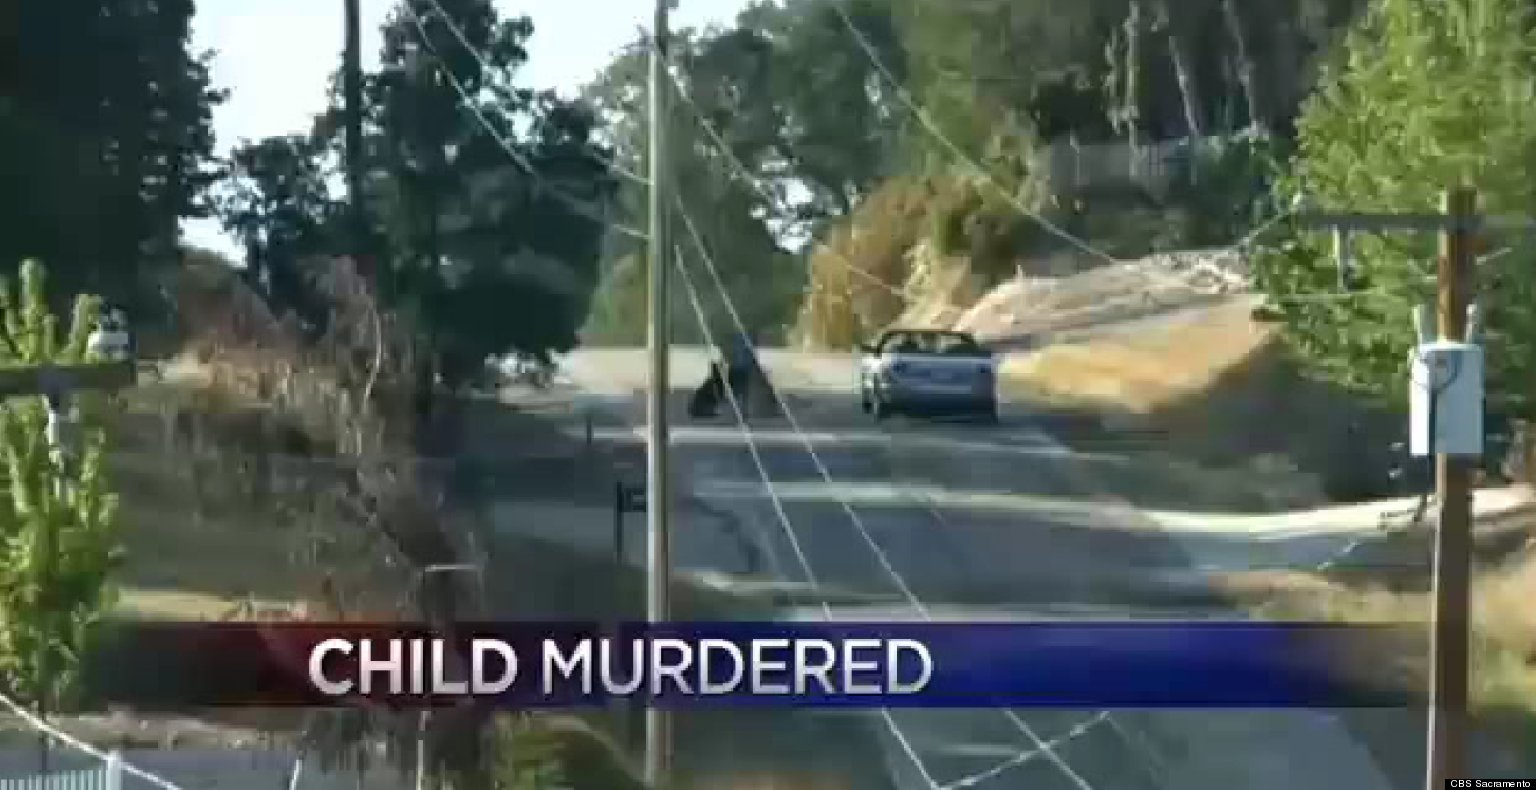 Manhunt Underway After 8-Year-Old Is Killed By Intruder In Calif. Home